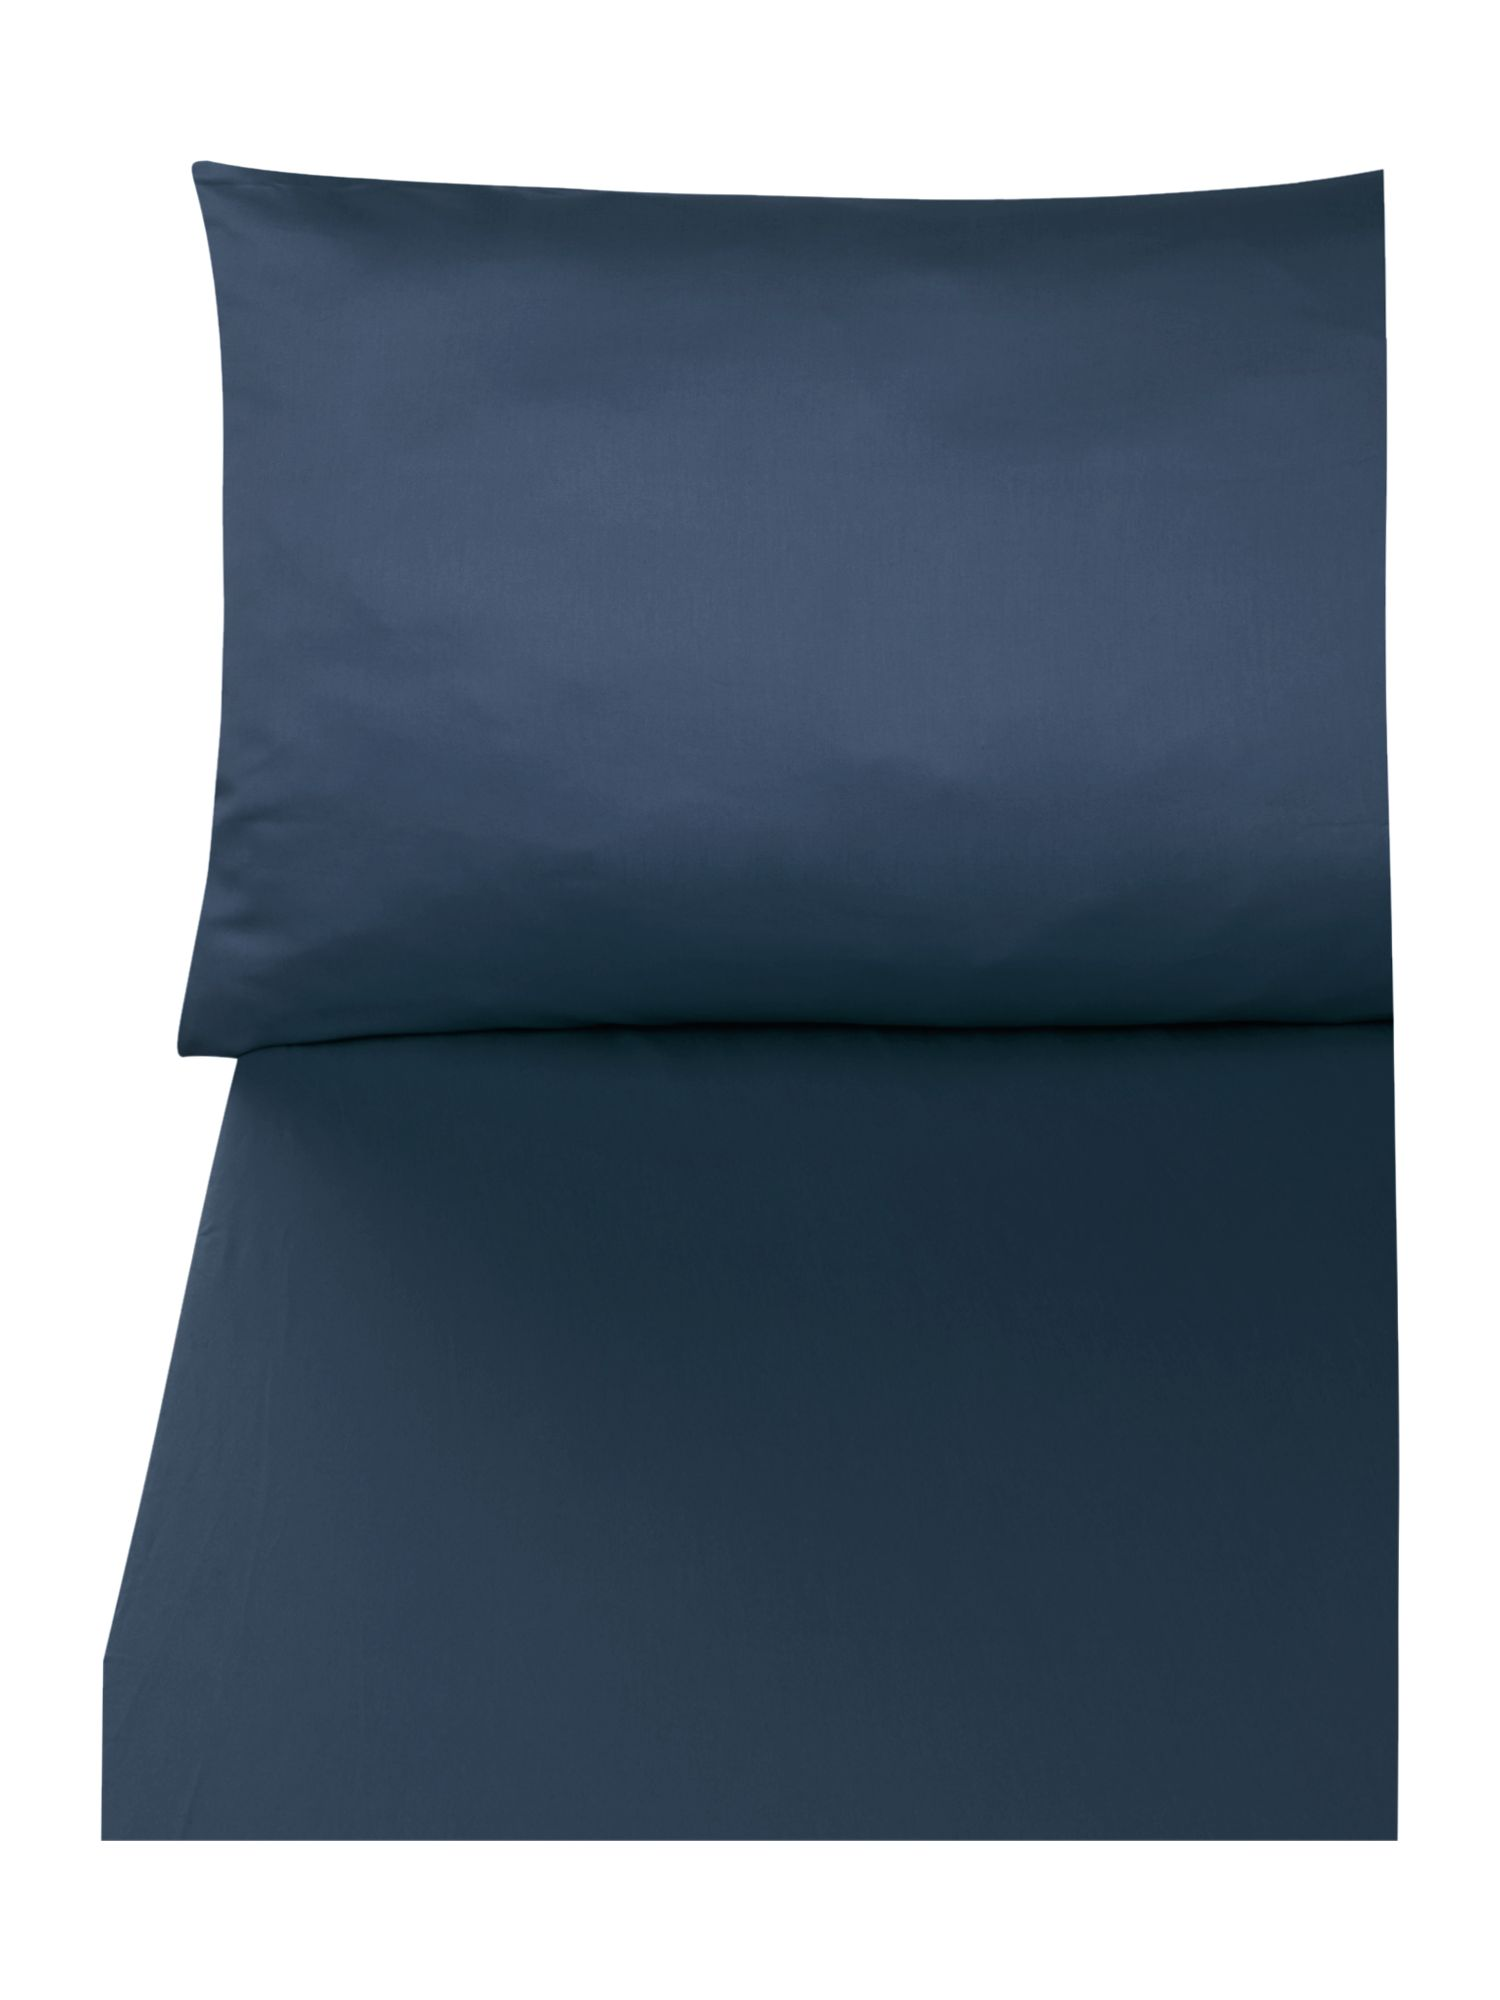 300 thread count navy oxford pillowcase pair